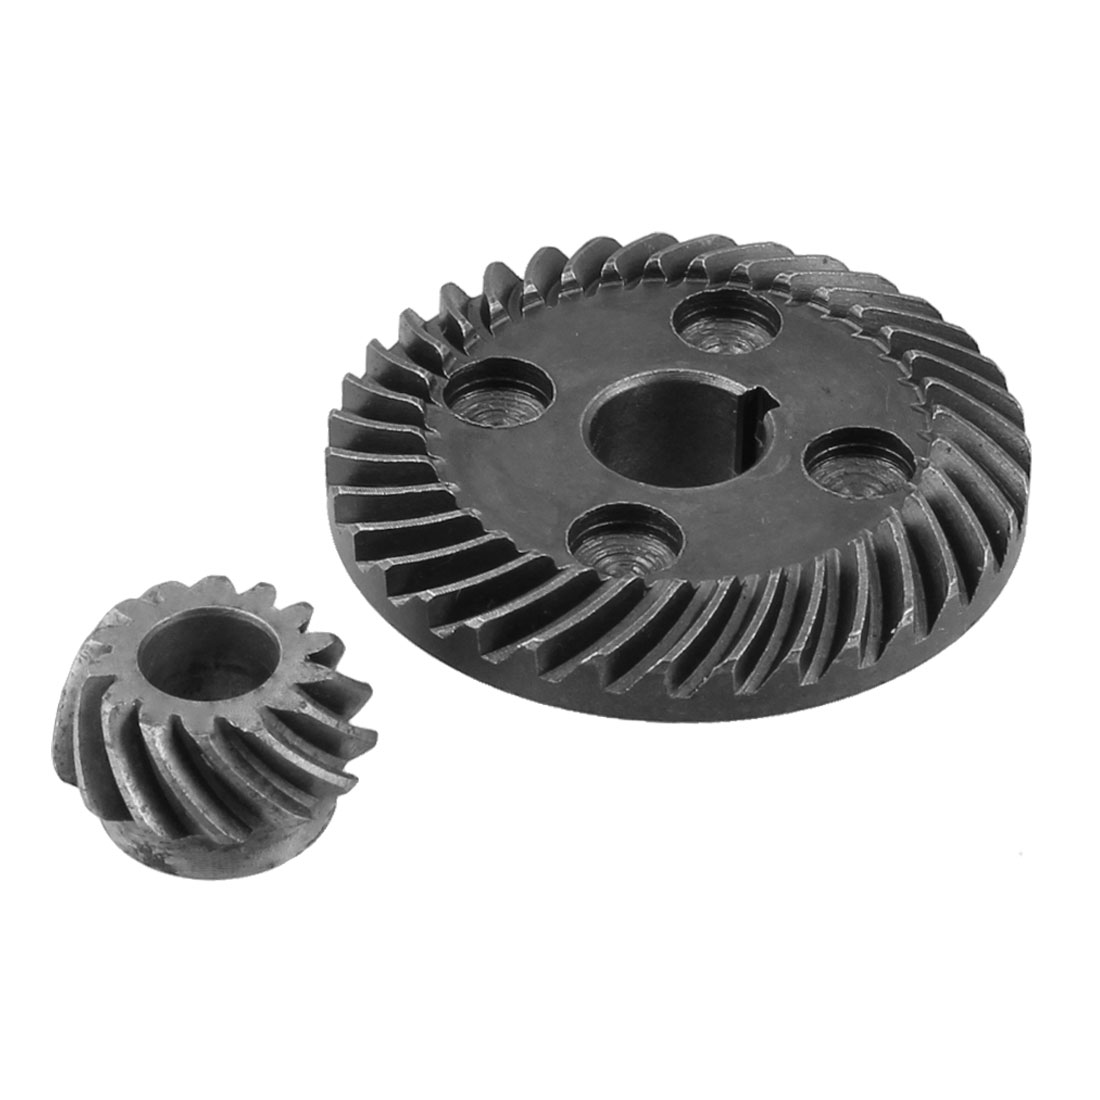 Metal Spiral Bevel Gear Set for Hitachi F3 Angle Grinder